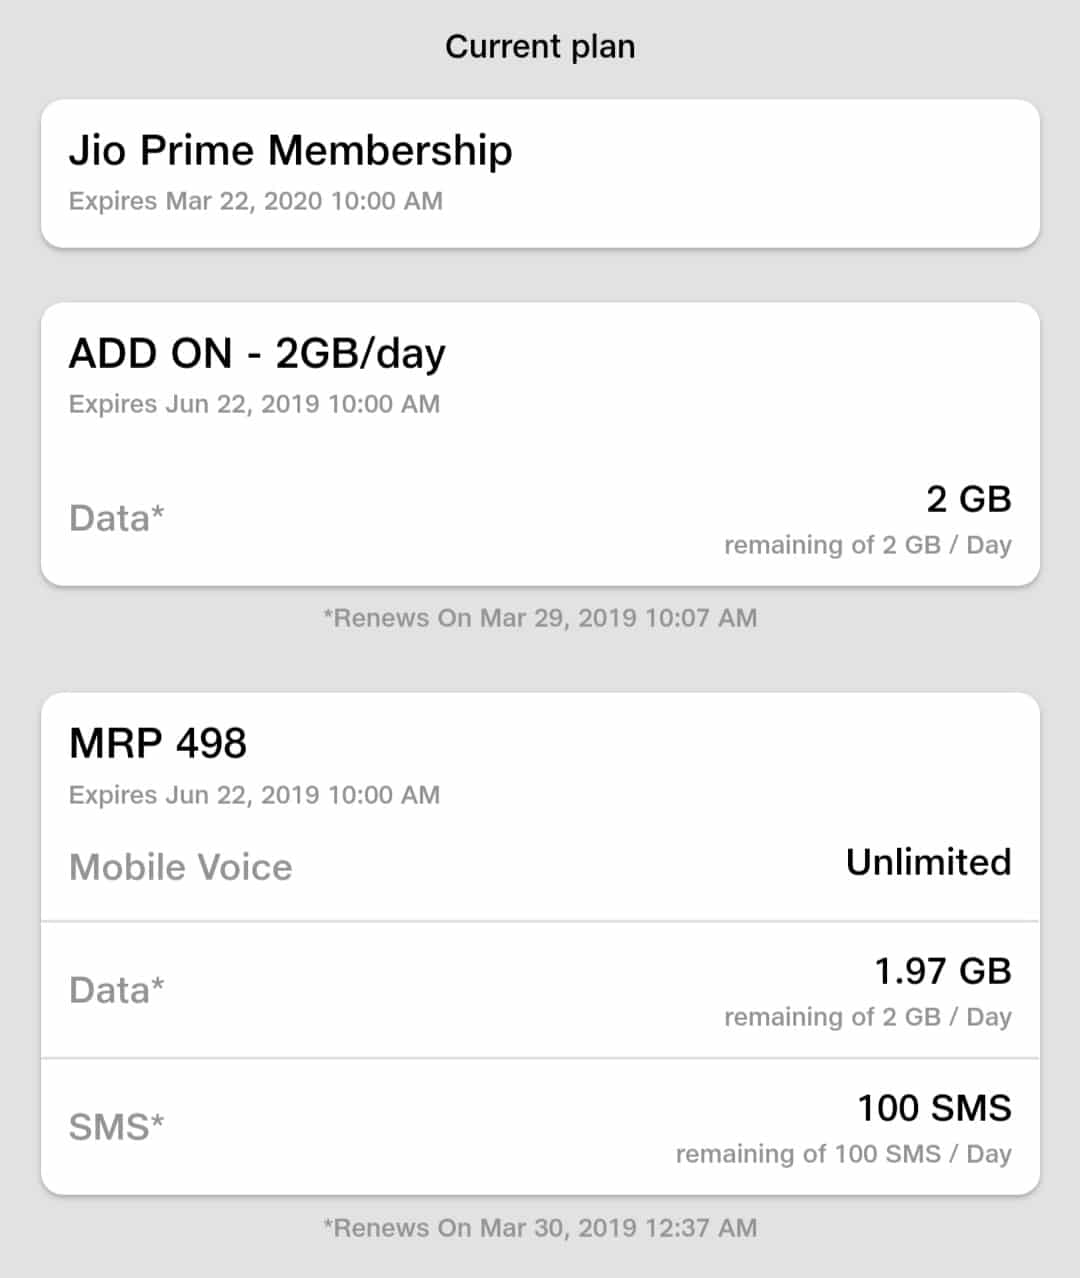 Jio Offer: How To Get 4GB Per Day In 2GB Per Day Plan